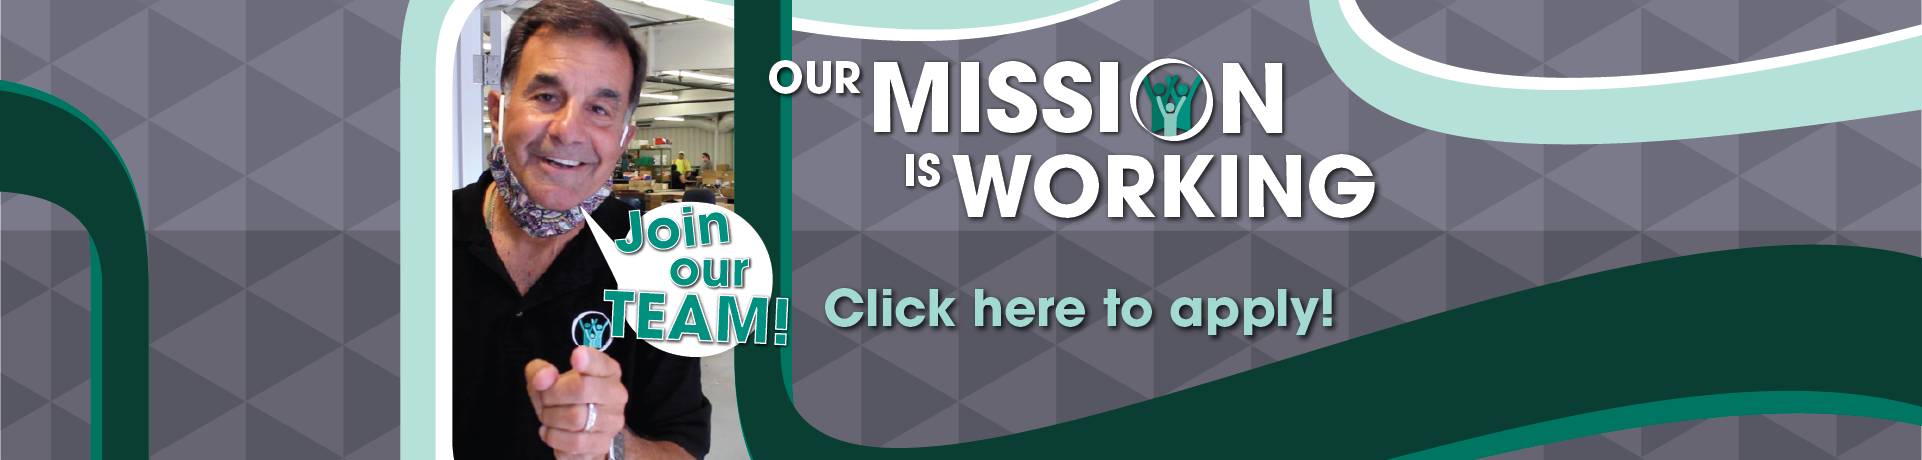 Tom_Our_Mission_is_Working_Banner_v3